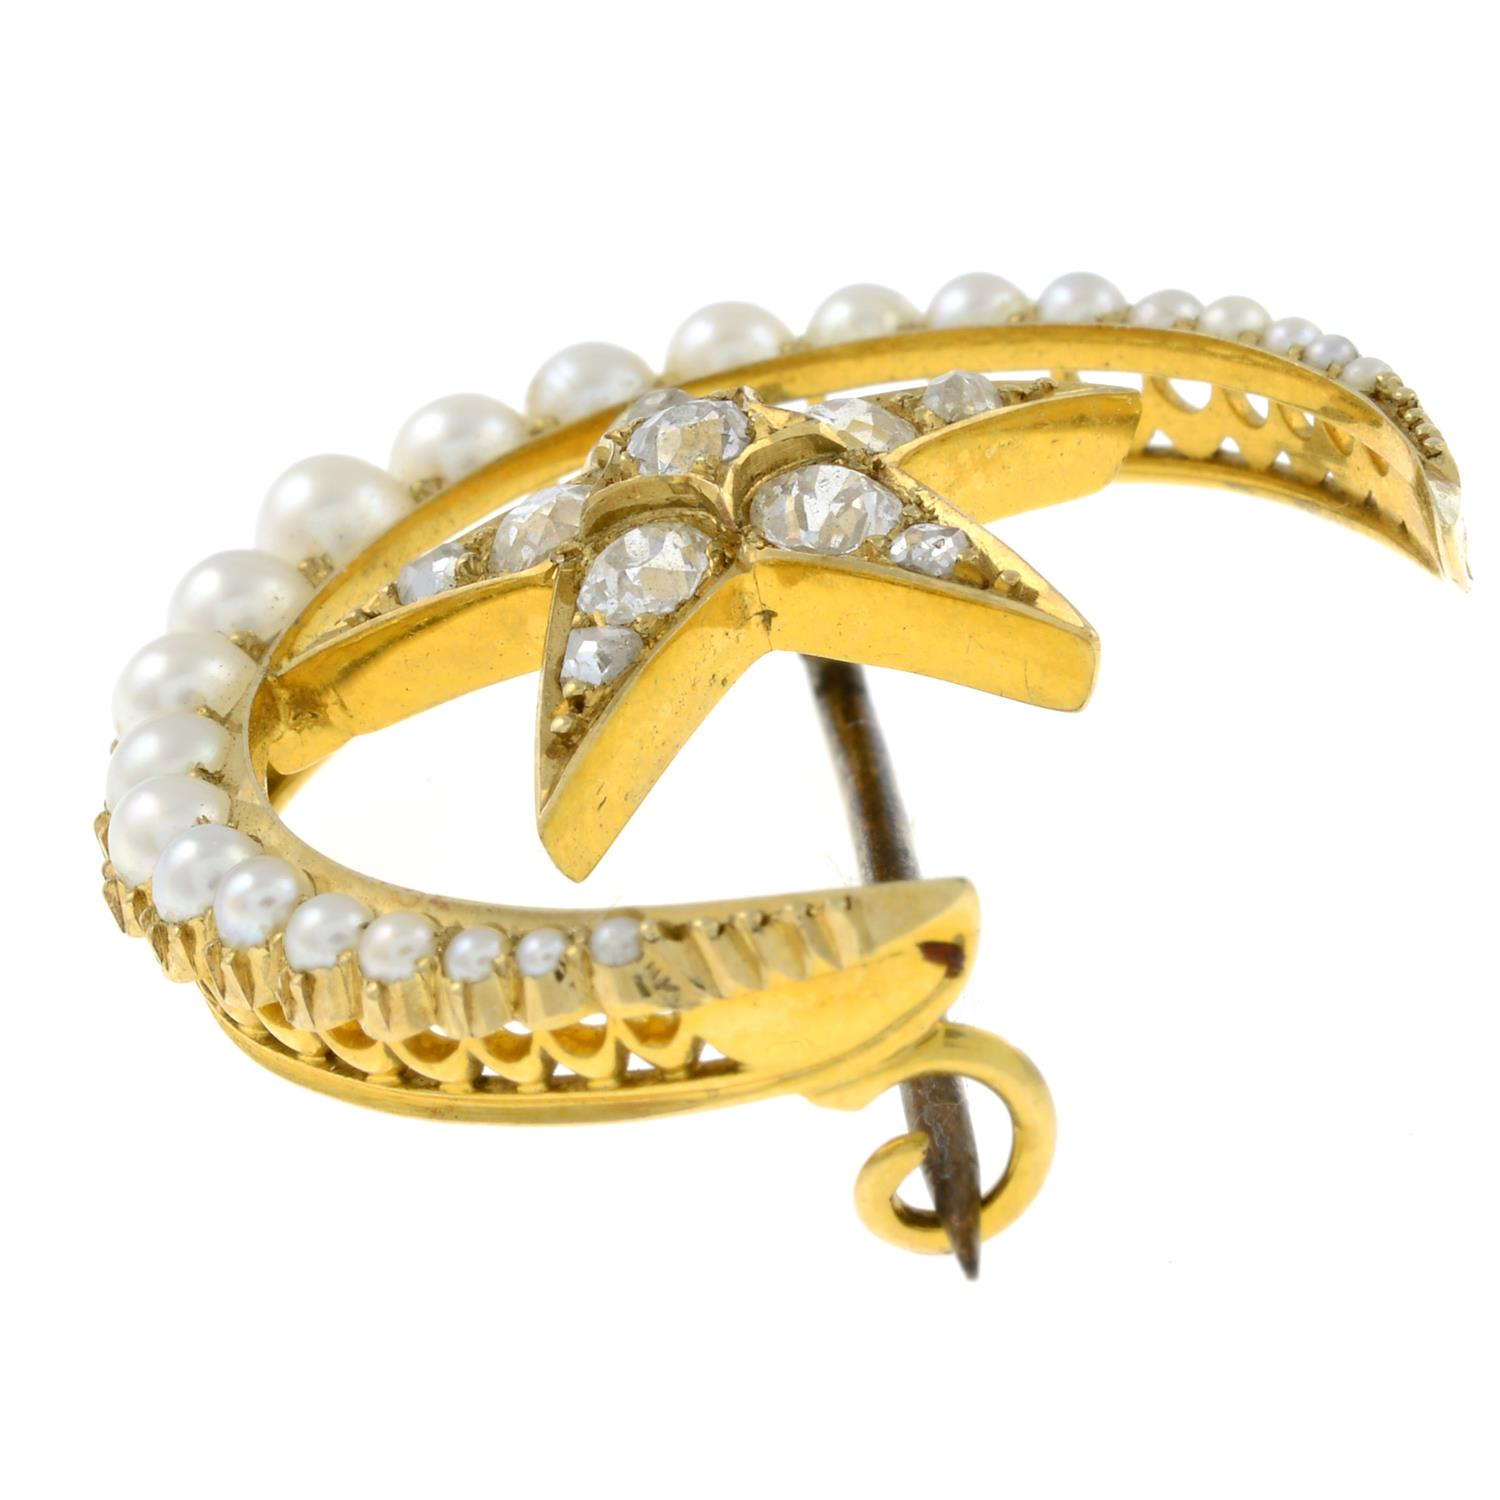 A late Victorian 15ct gold split pearl and old-cut diamond crescent moon and star brooch. - Image 4 of 5